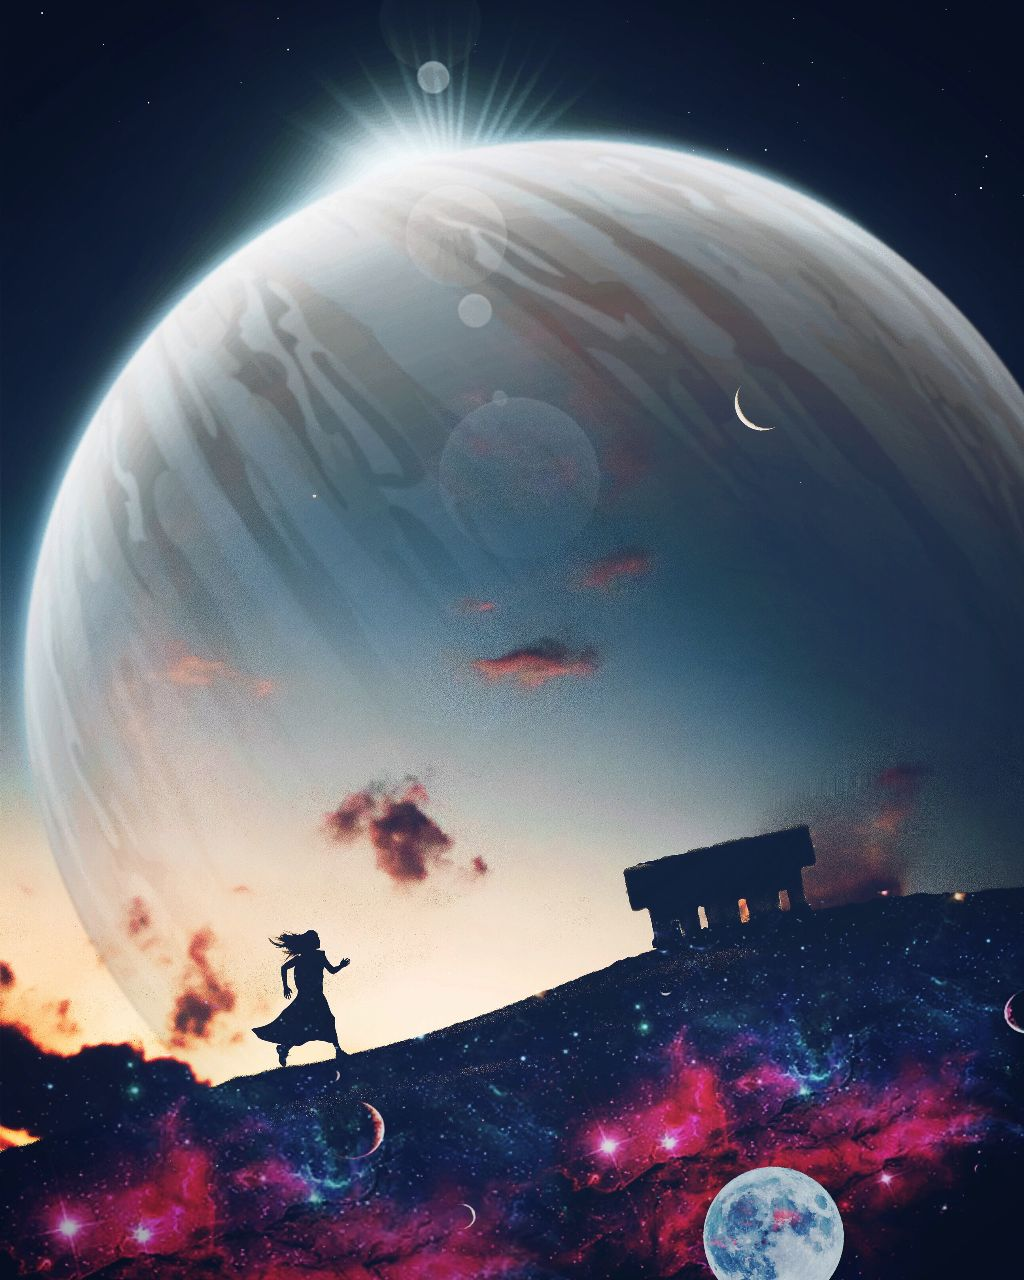 Escape....  #surreal #planet #bigger #sci-fi #scenes #silhouette #credits #image #source #stickers #freetoedit